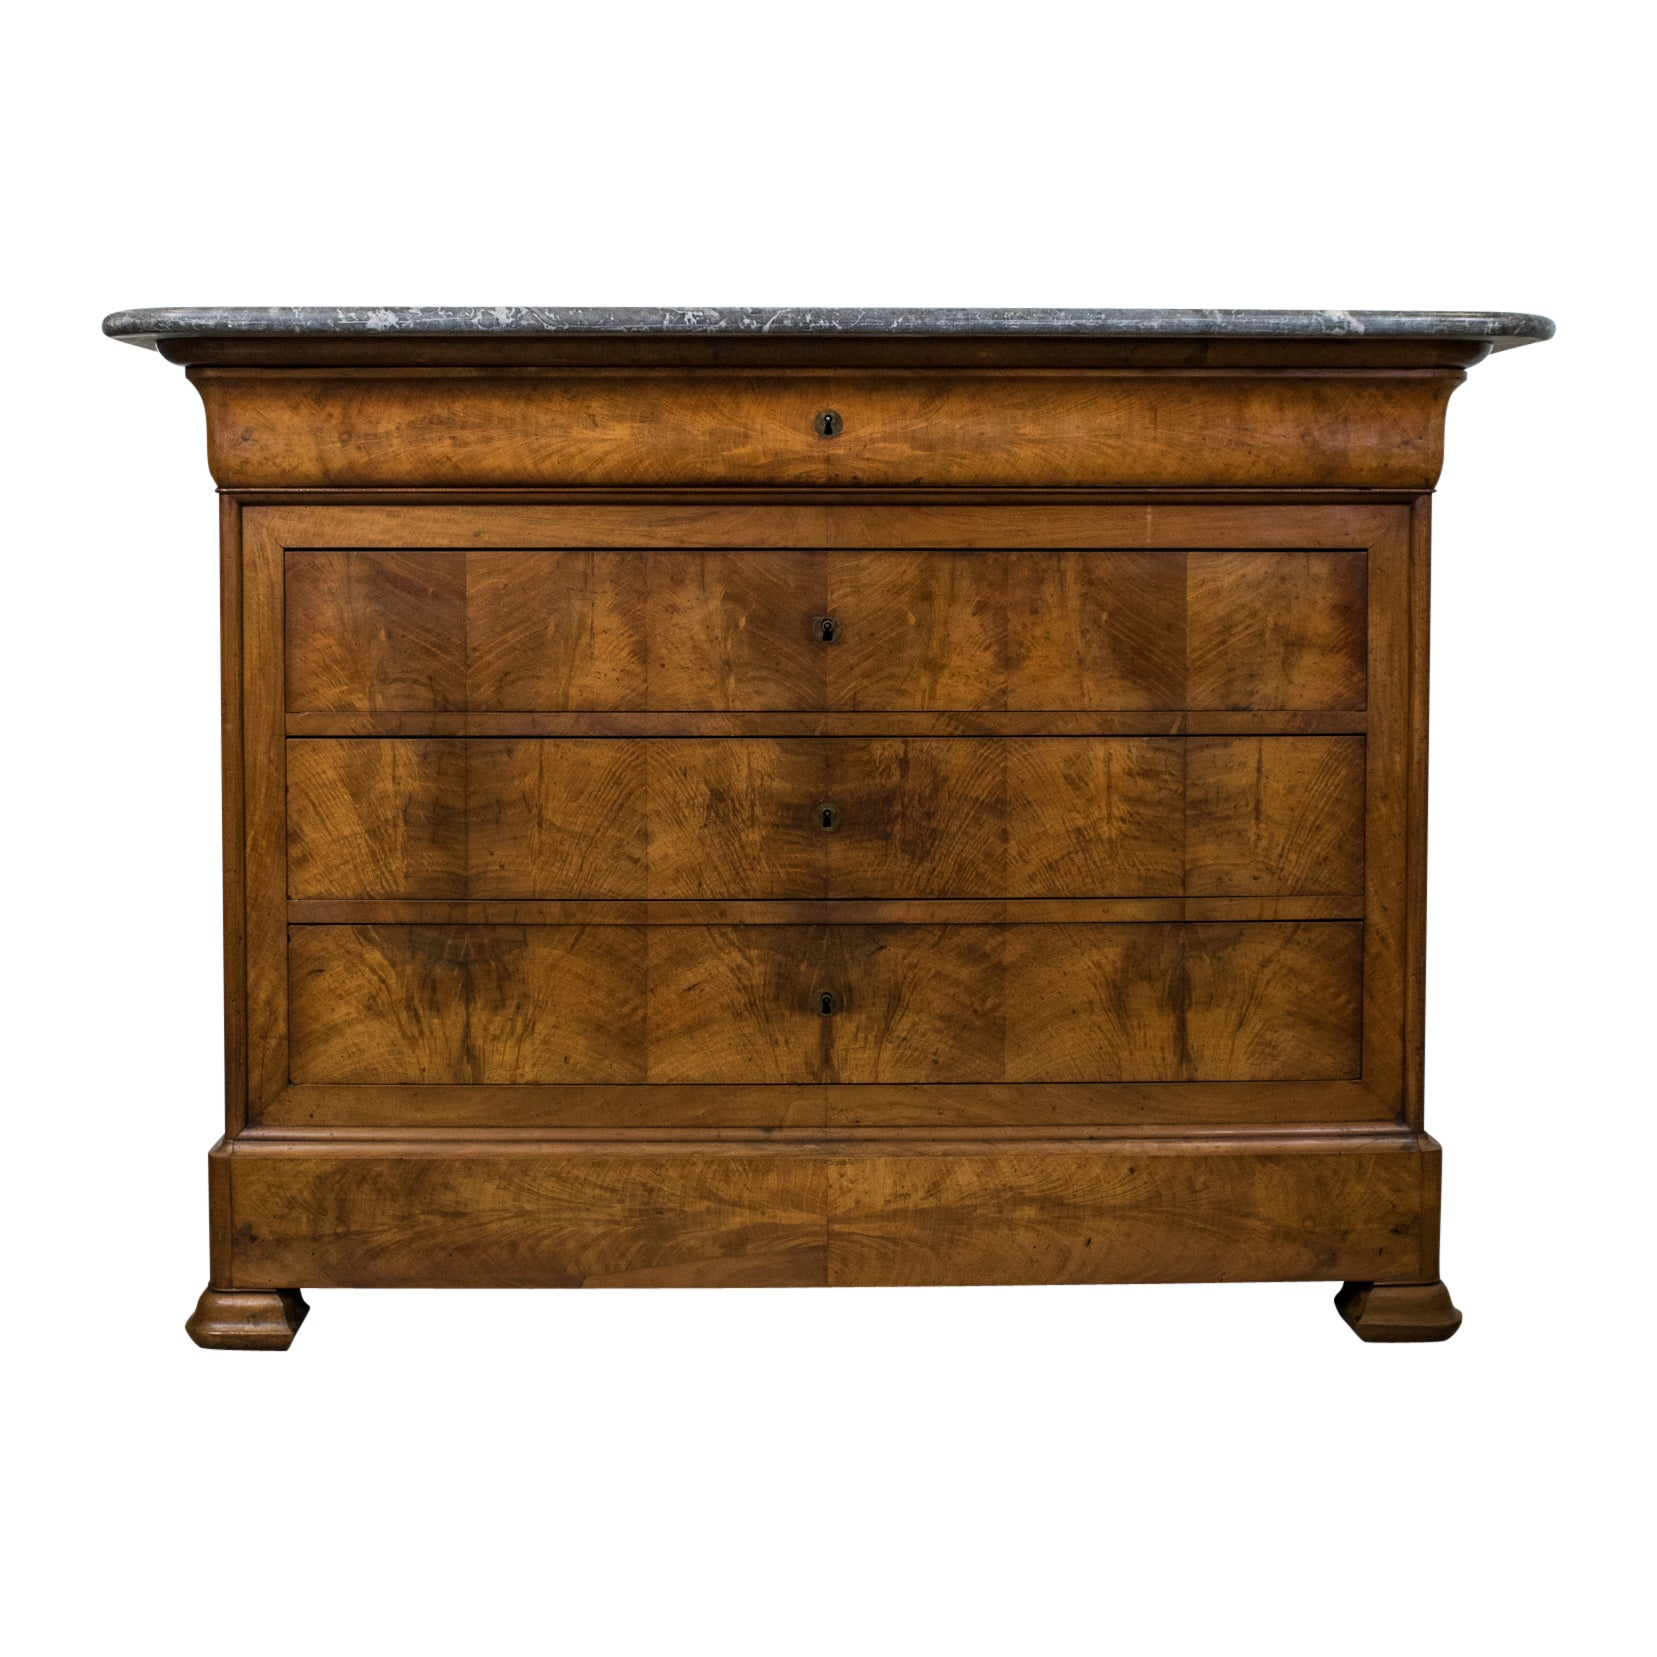 Louis Philippe Period Walnut Commode